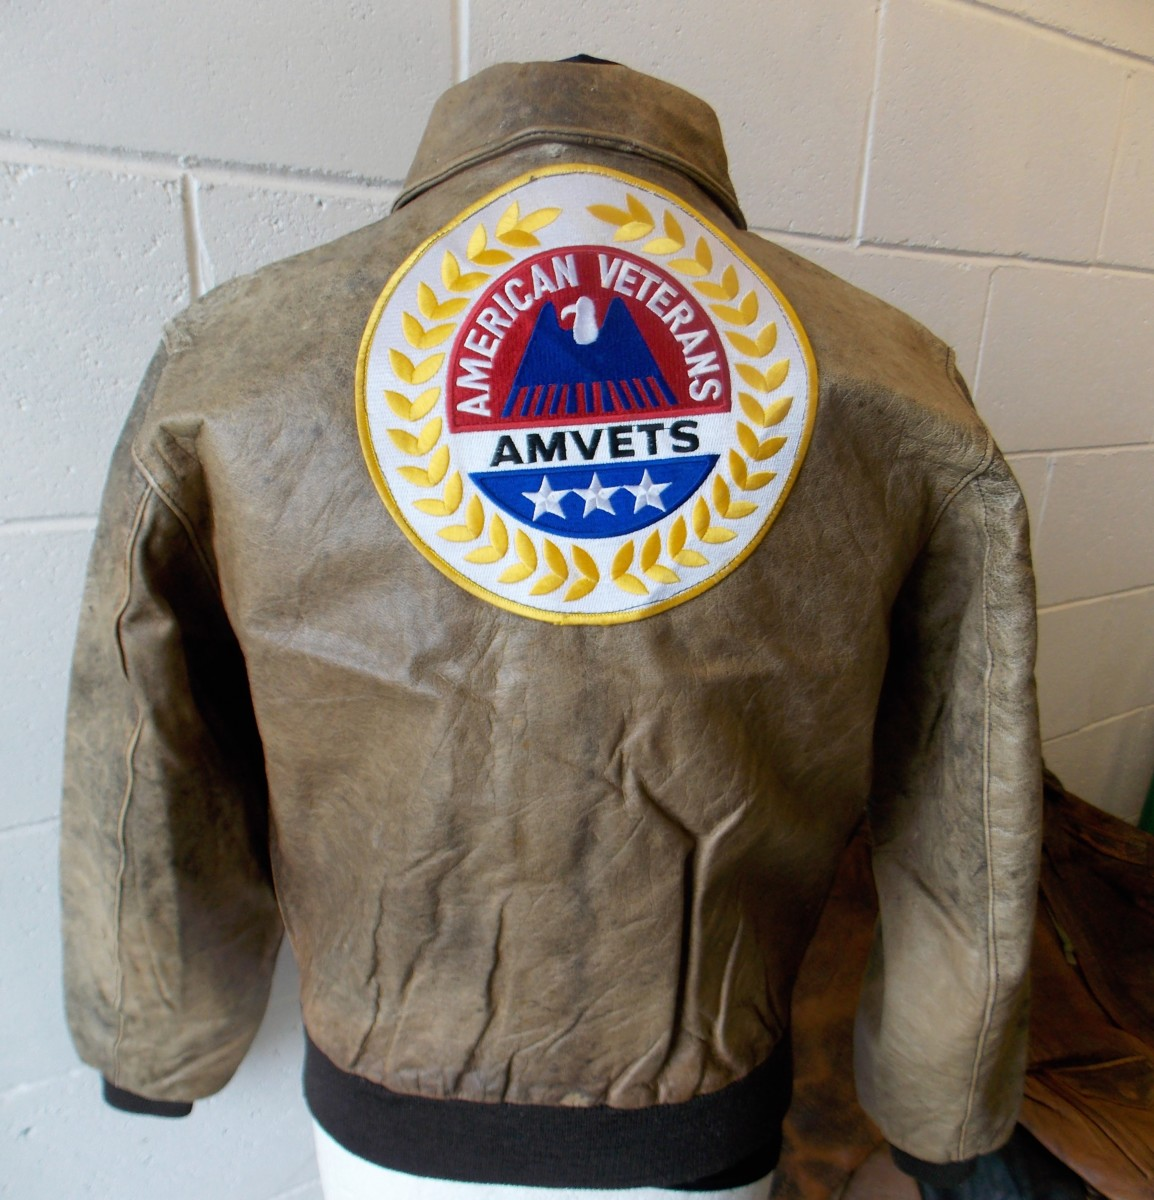 b40082ca3 L. L.BEAN SCOVILL Main Zipper Women's Type A-2 Bomber Goatskin Leather  Jacket With American Veterans Patch on Back - Made in USA (N-9, 1.1 kg)